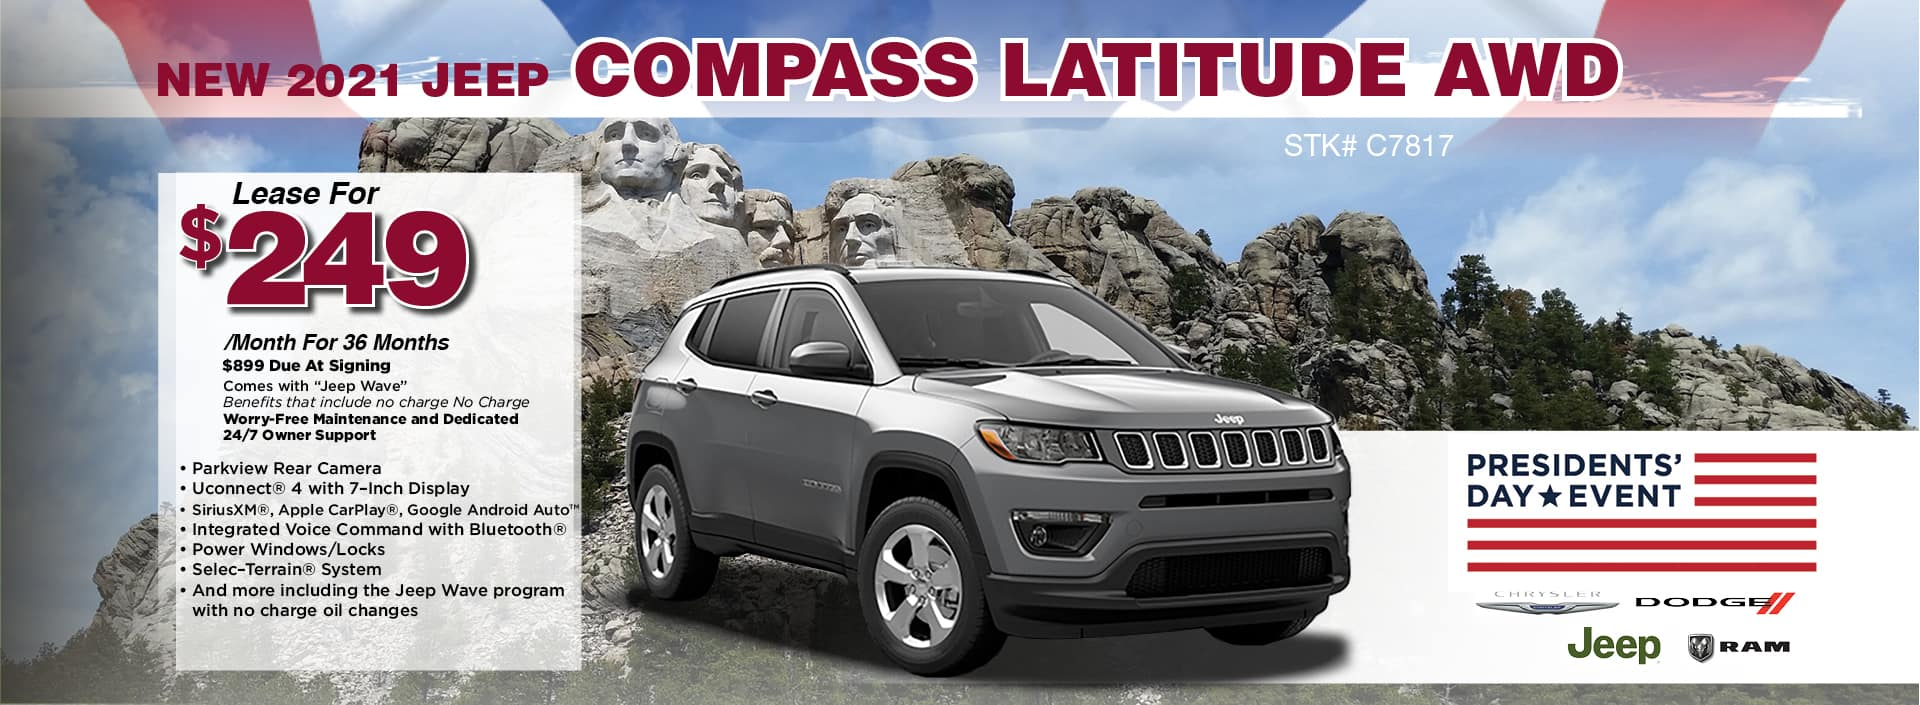 021.397.03_Midstate_1920x705_JeepCompass_Dealer Web